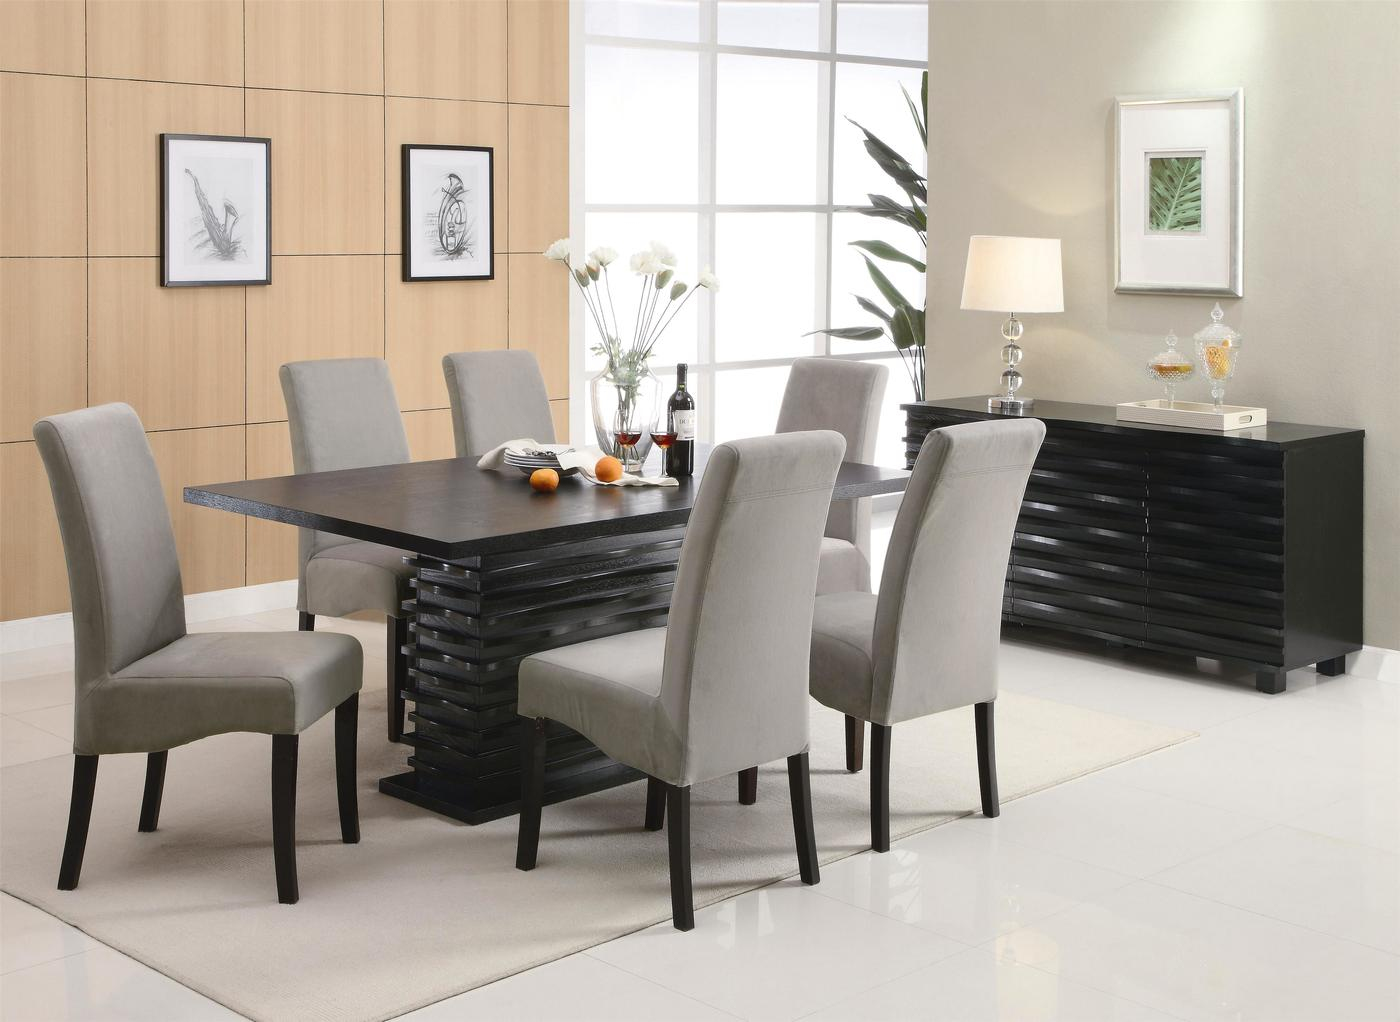 Stanton semi formal gray 7 piece dining room furniture set for Formal dining room furniture